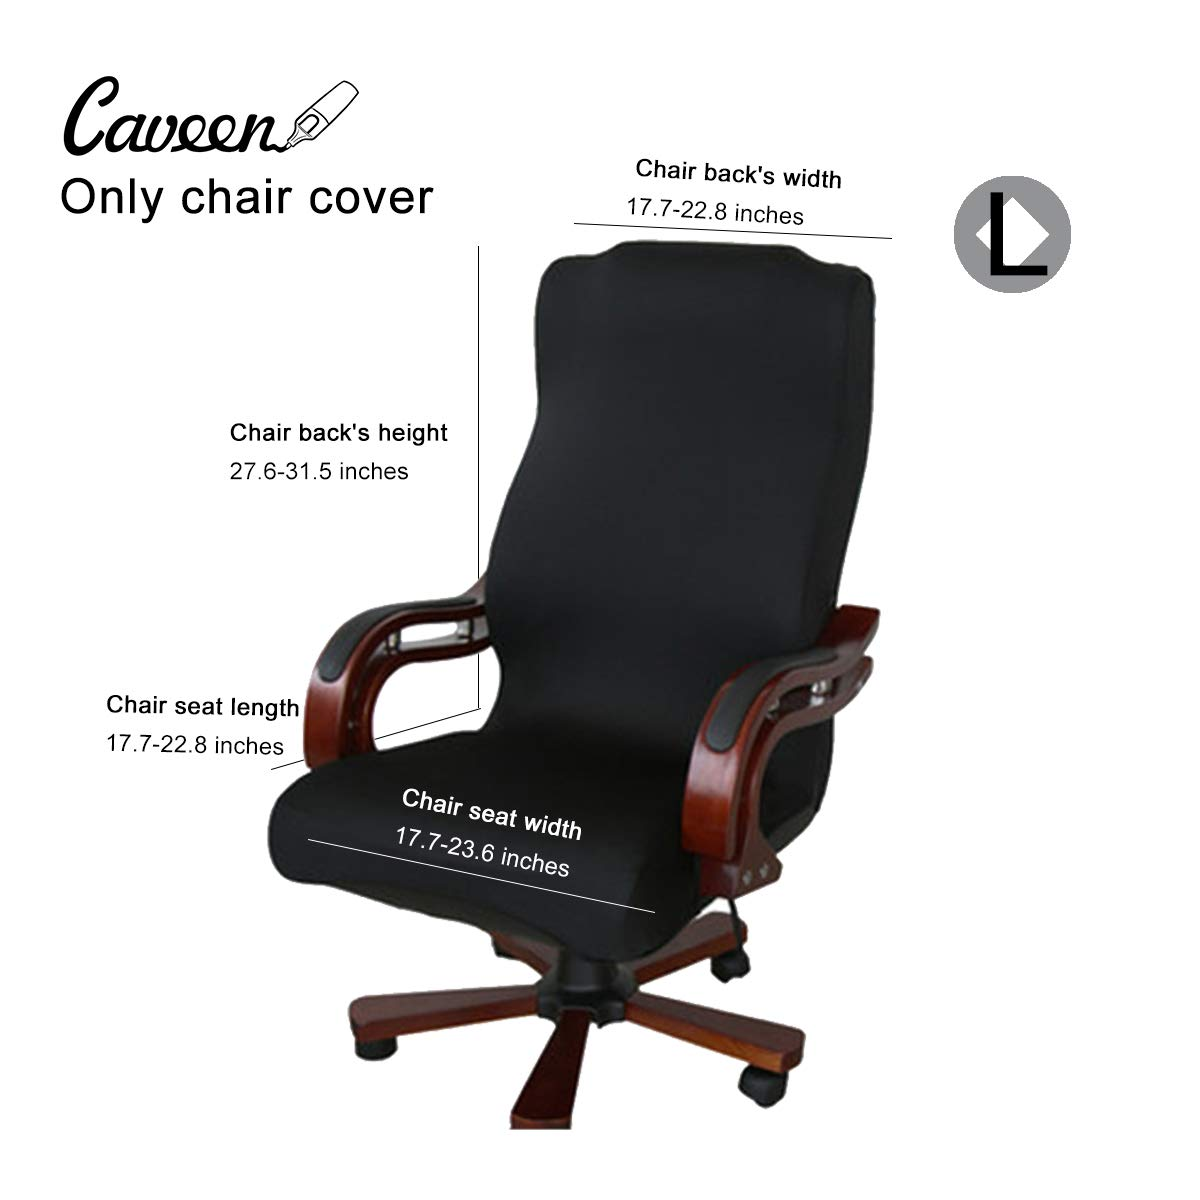 Office Chair Armrest Amazon.com: CAVEEN Office Chair Cover Computer Chair Universal Boss Chair  Cover Modern Simplism Style High Back Large Size (Chair not Included) Black  Large: ...